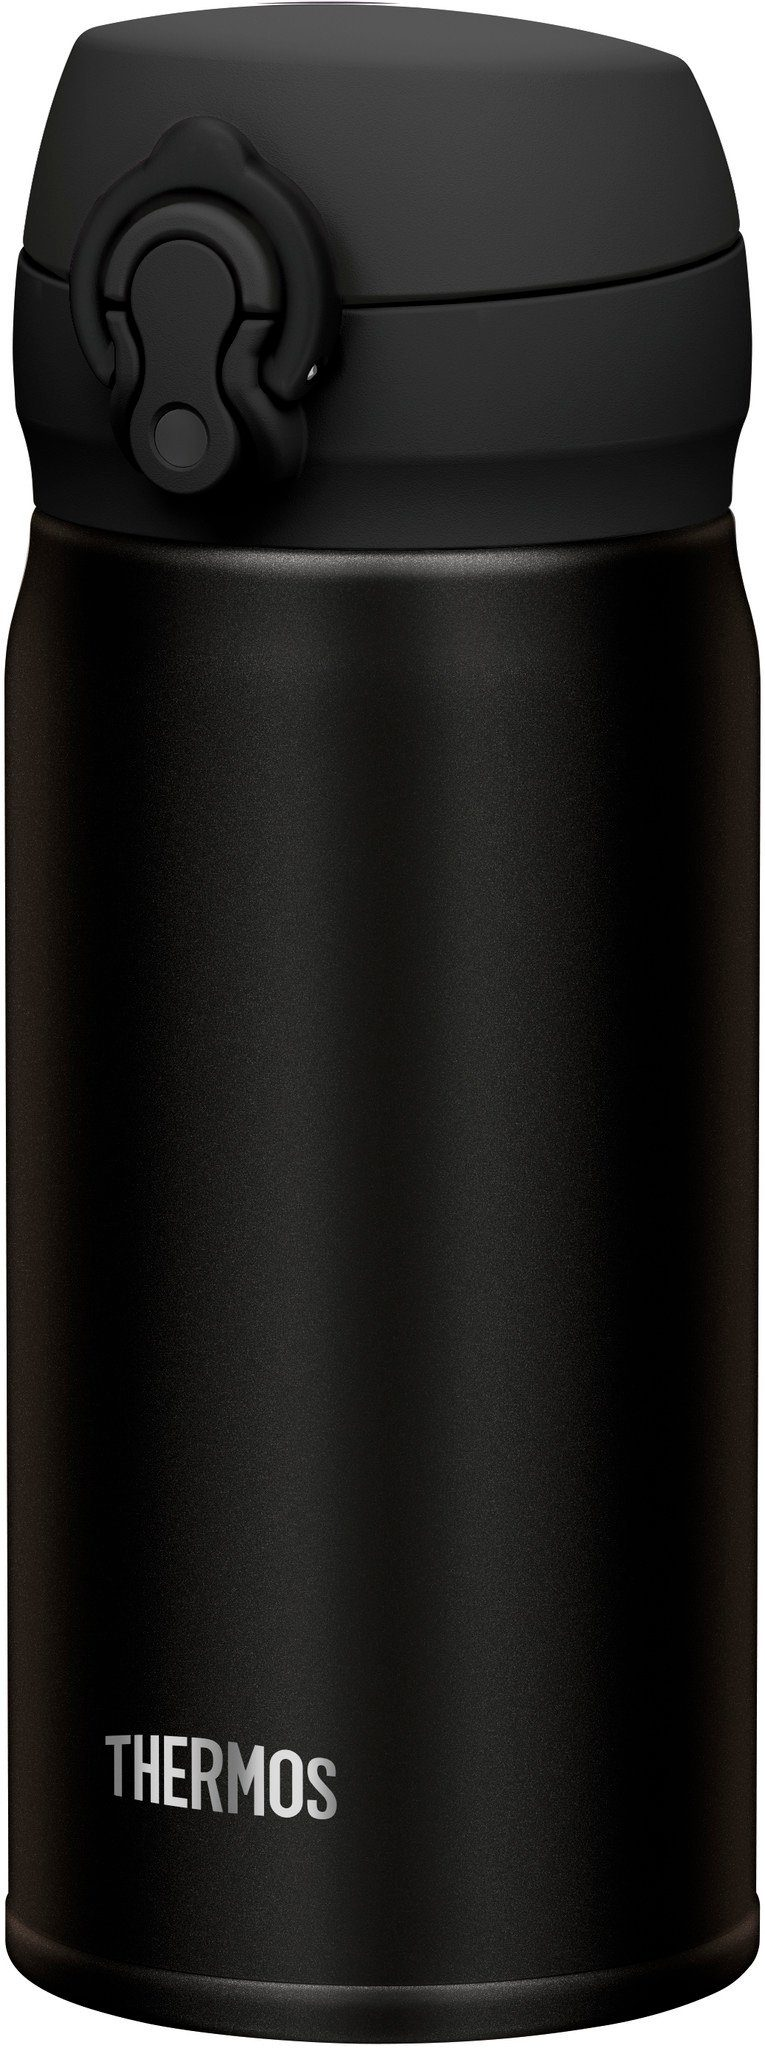 THERMOS Trinkflasche »Ultralight Isoflasche 0,35l«